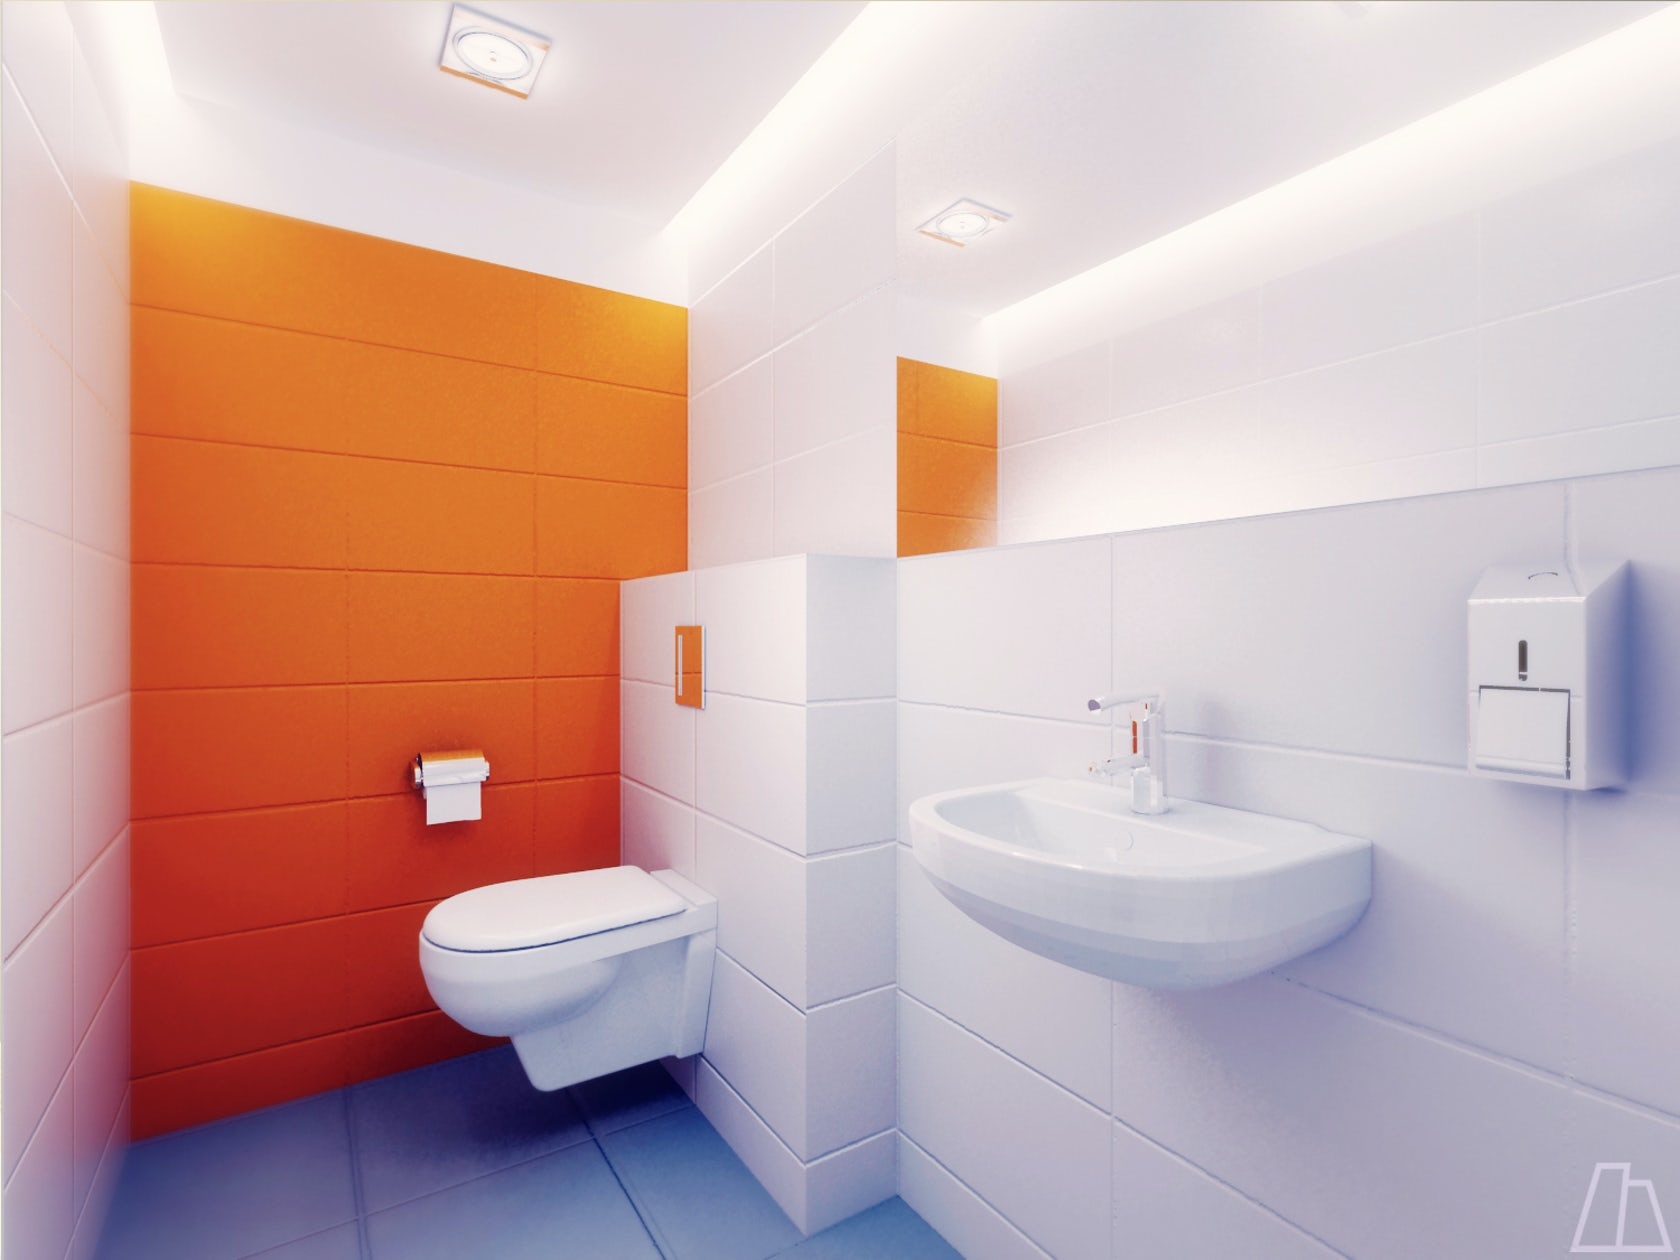 Public toilet interior design architizer for Bathroom and toilet interior design